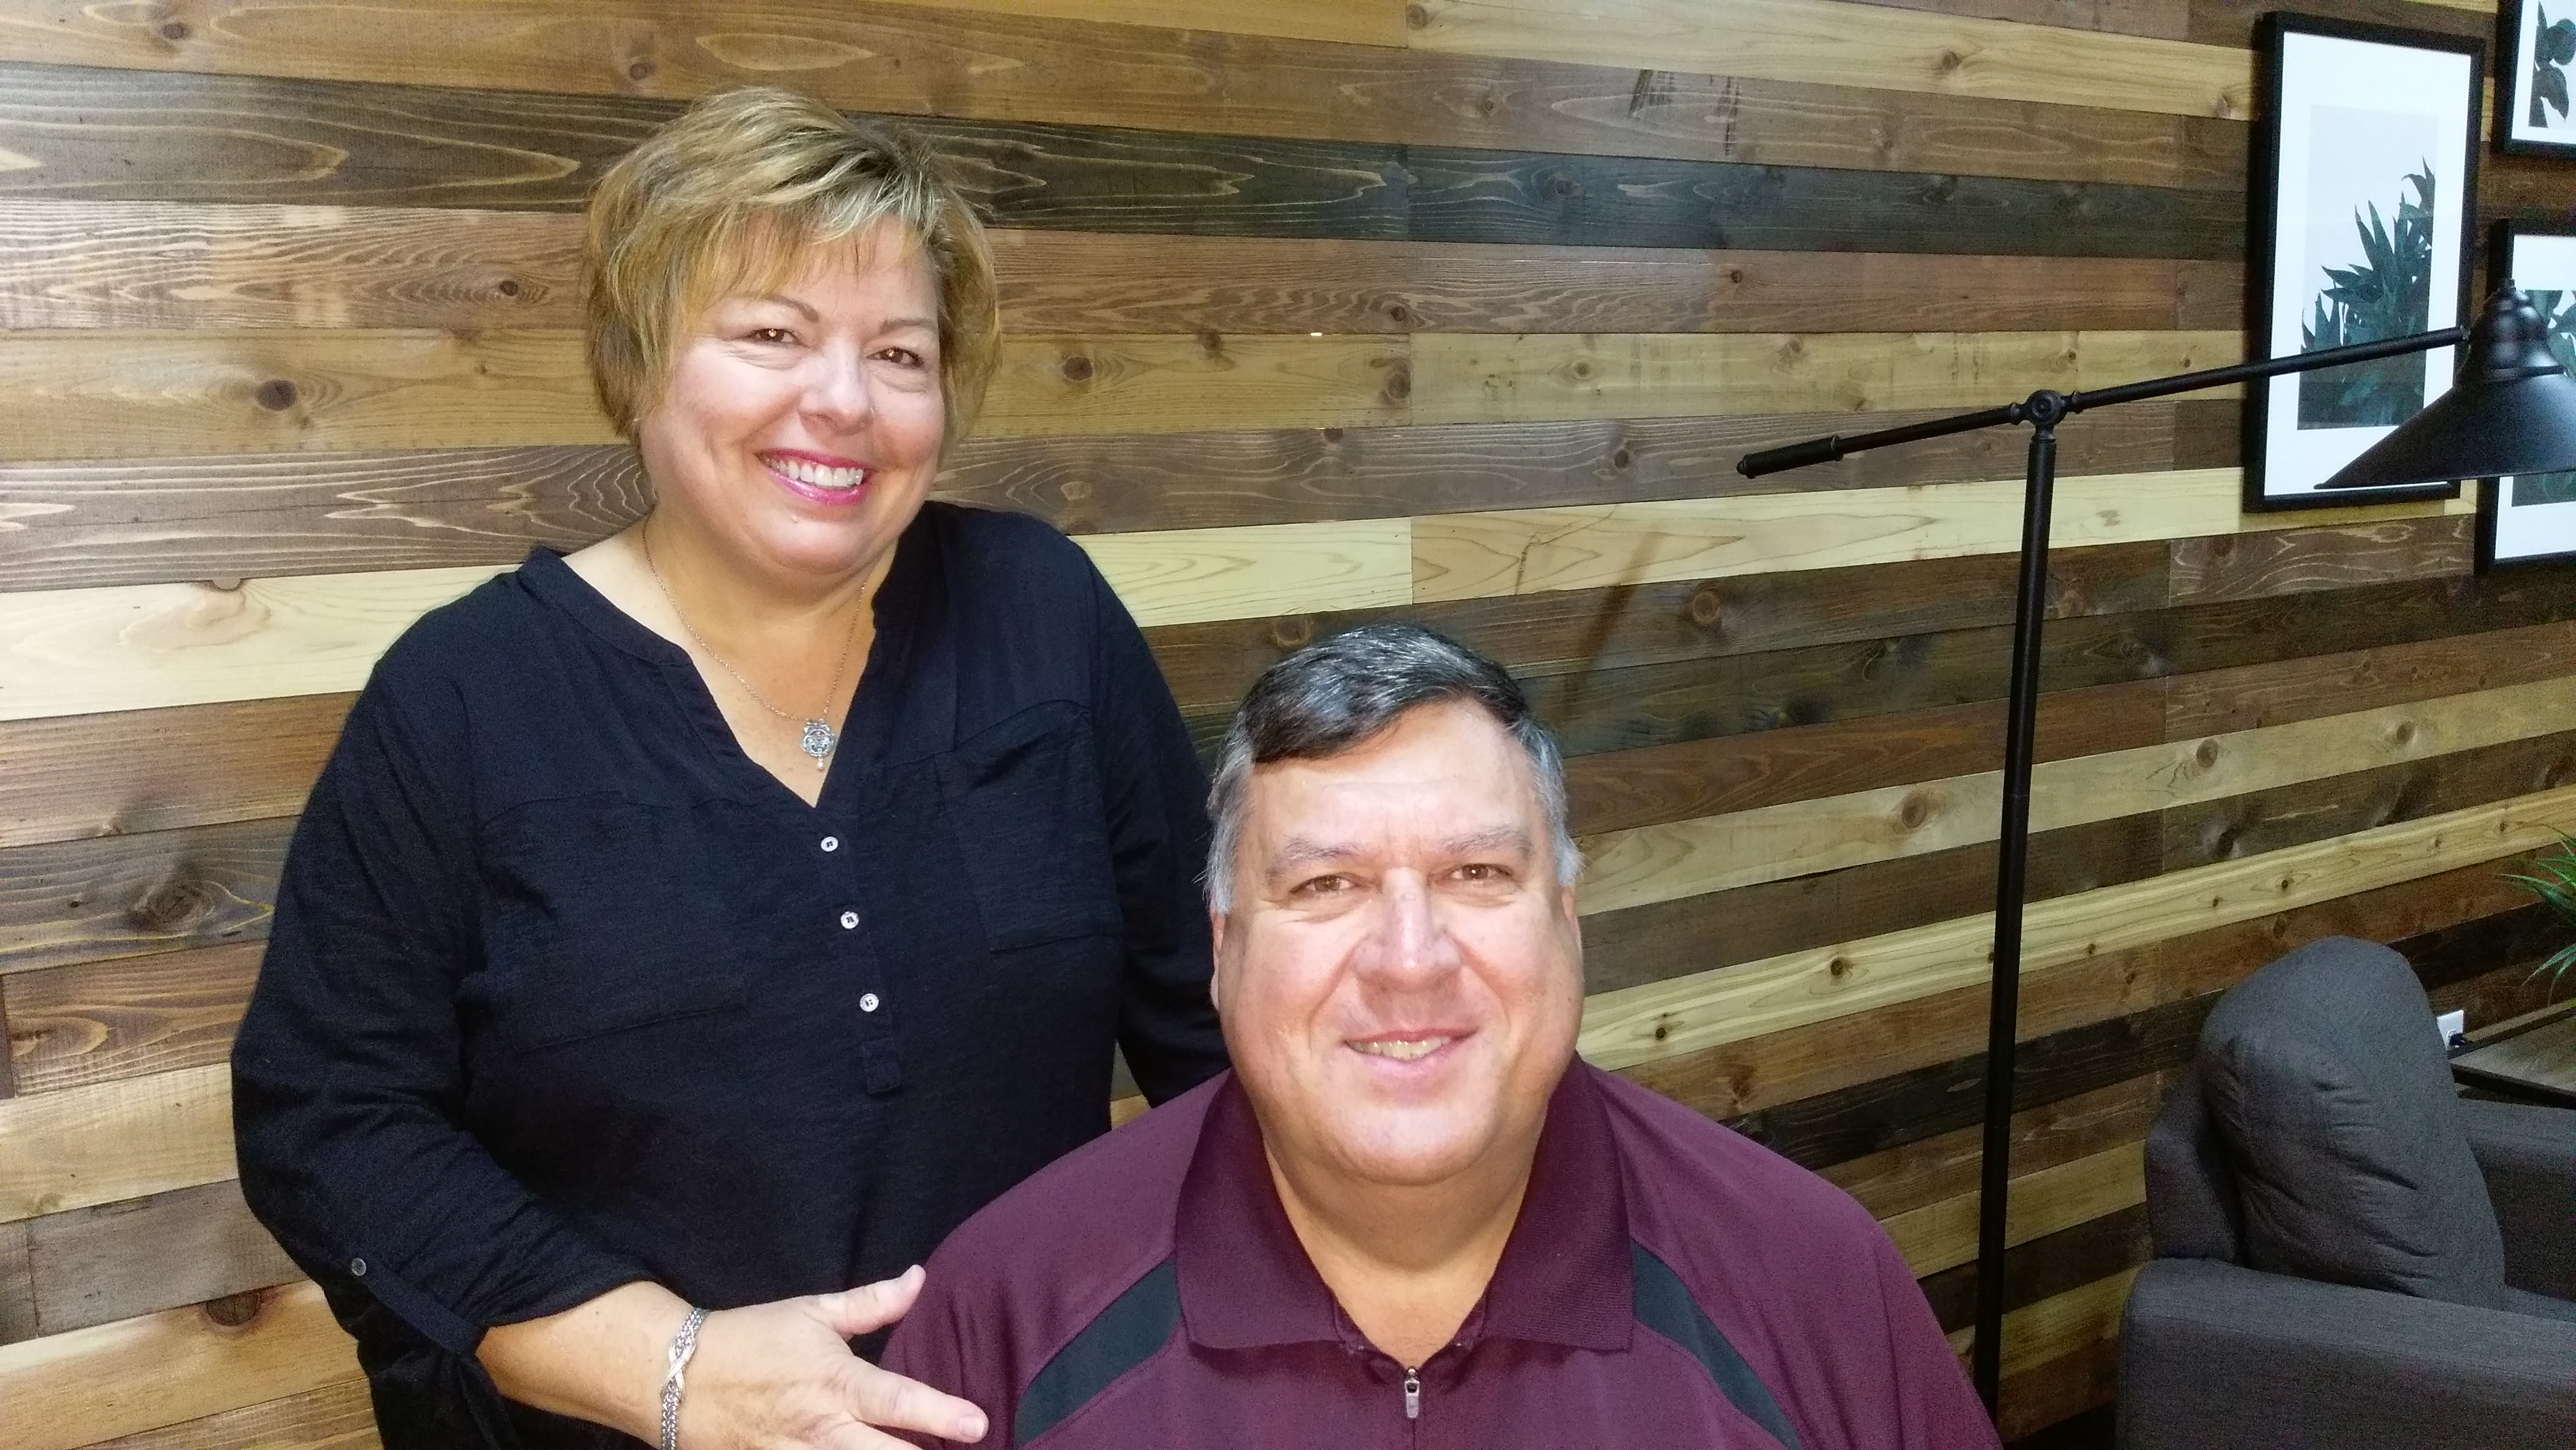 Cindy and Jim Barker, members of The Chapel, opened their home to international guests in need of room and board.